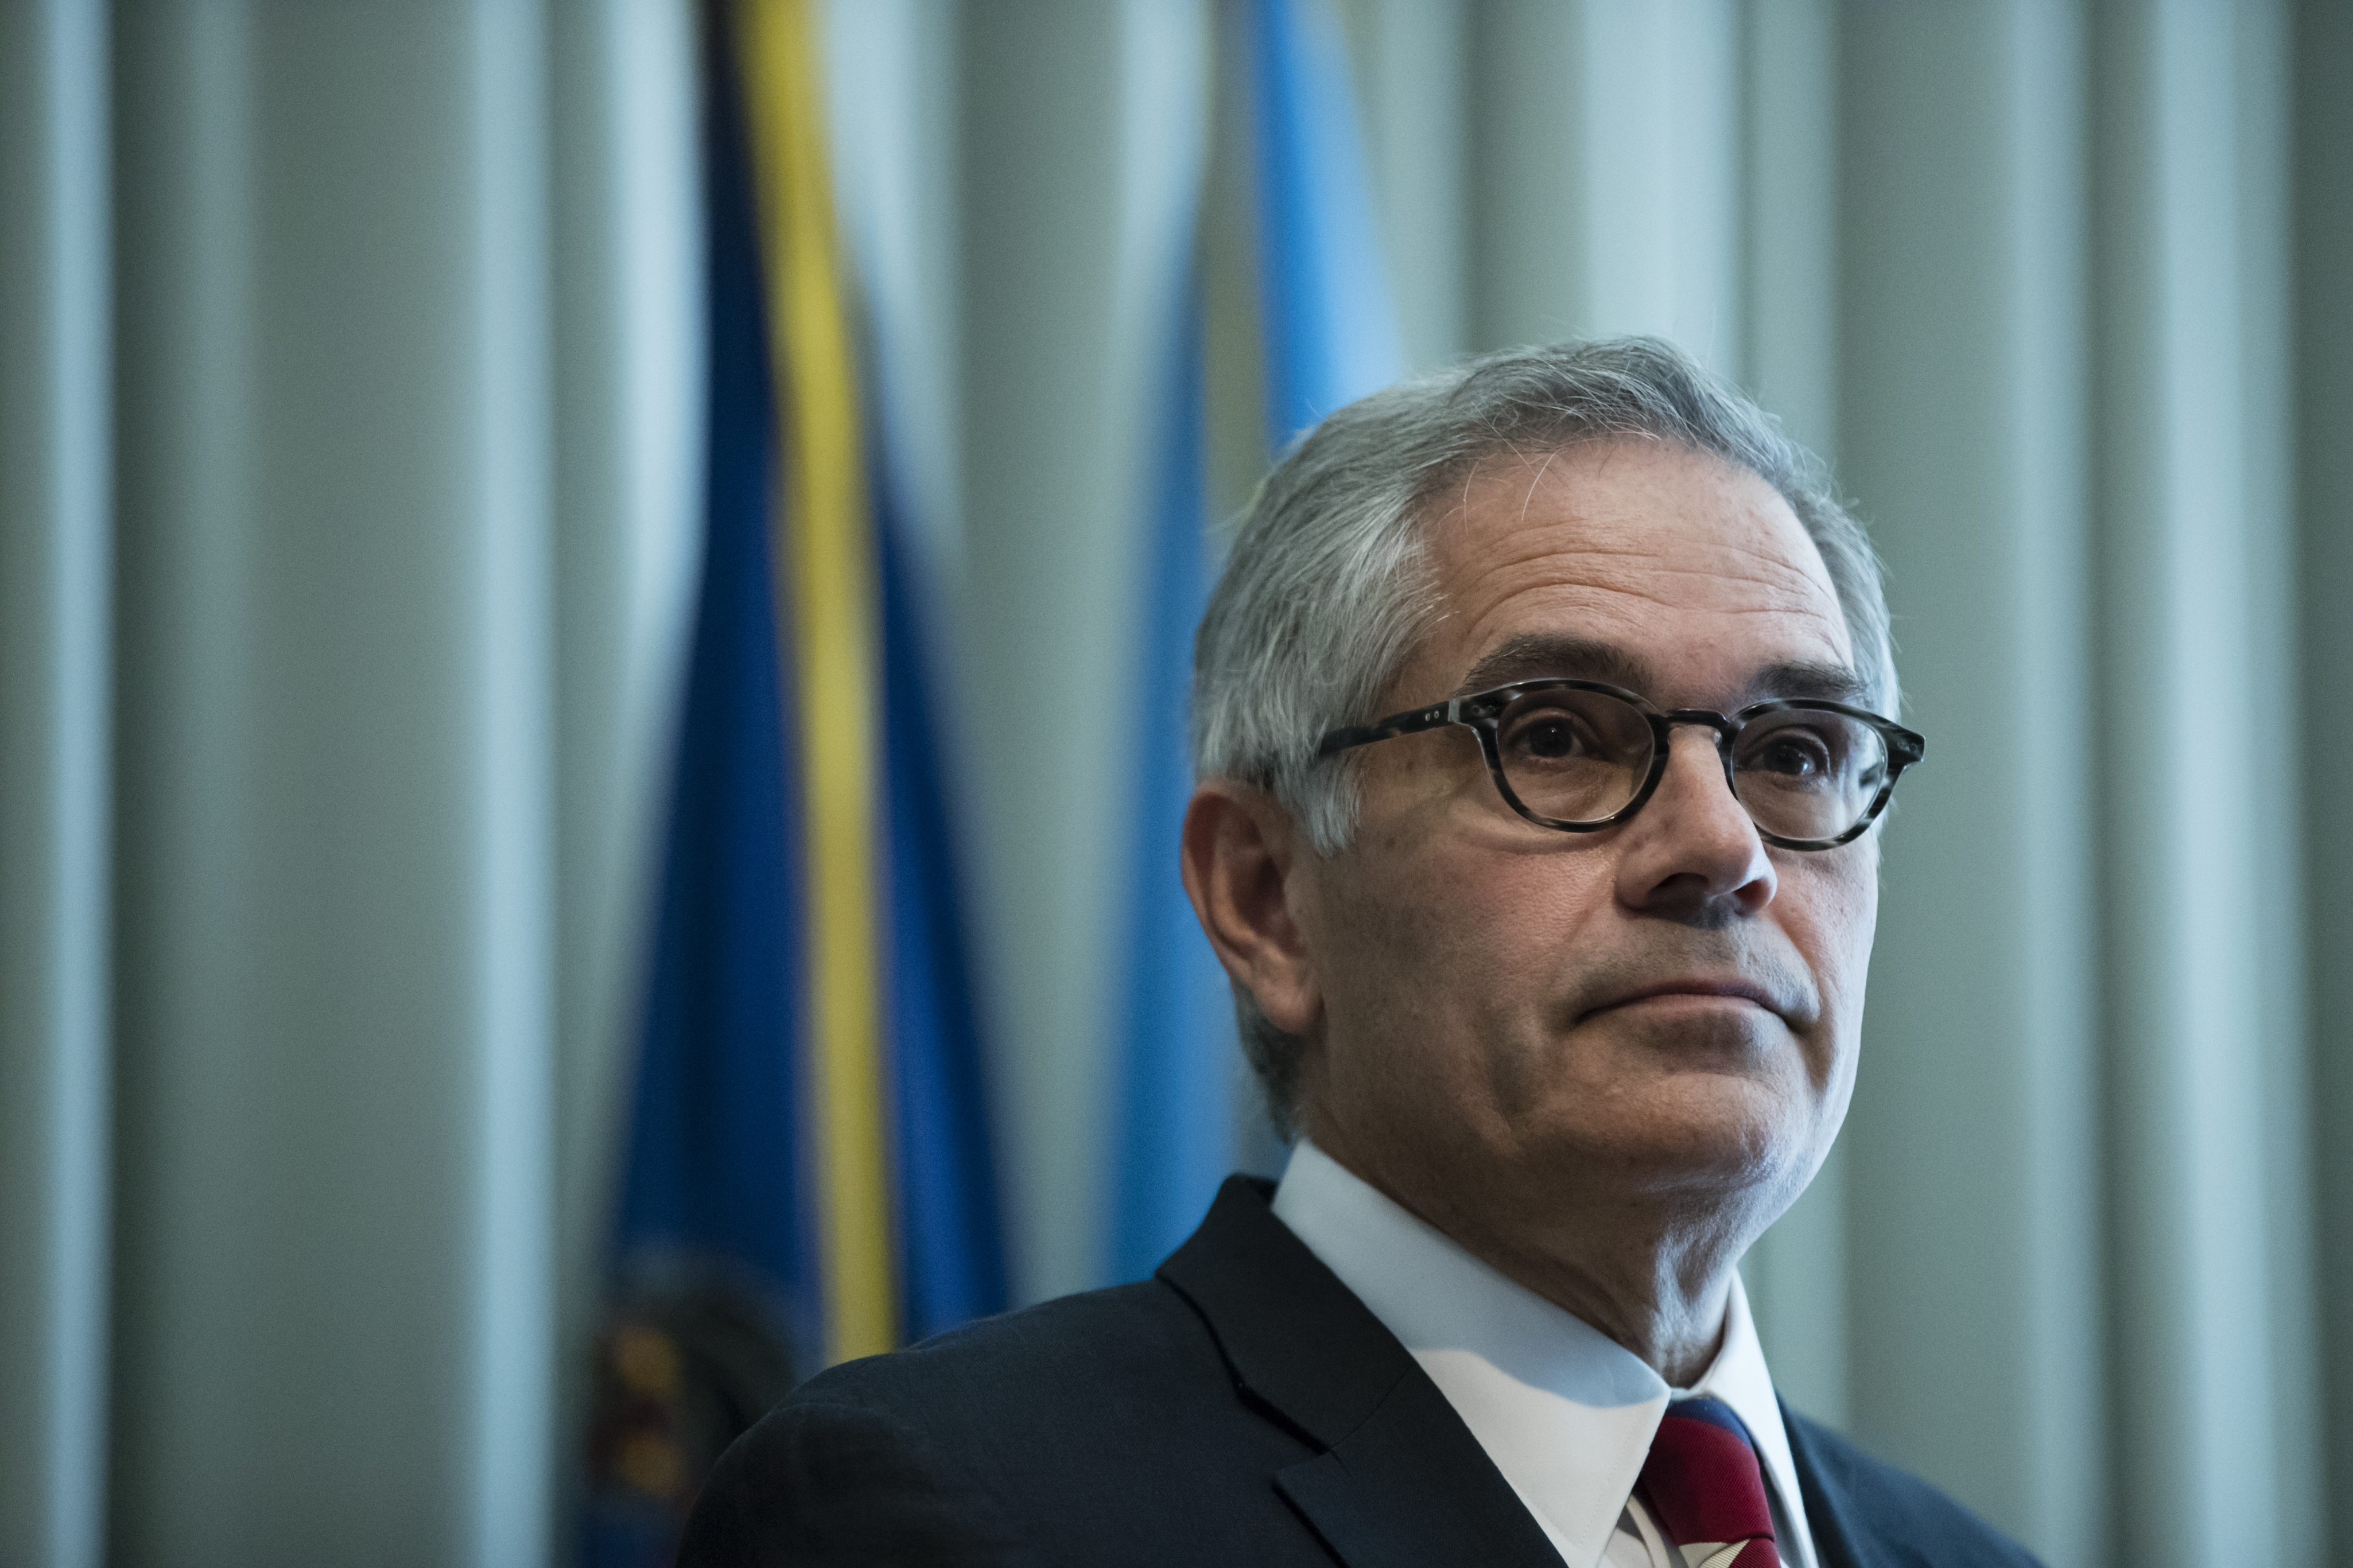 DA Krasner fought against civil asset forfeiture. But under his watch, the practice continues